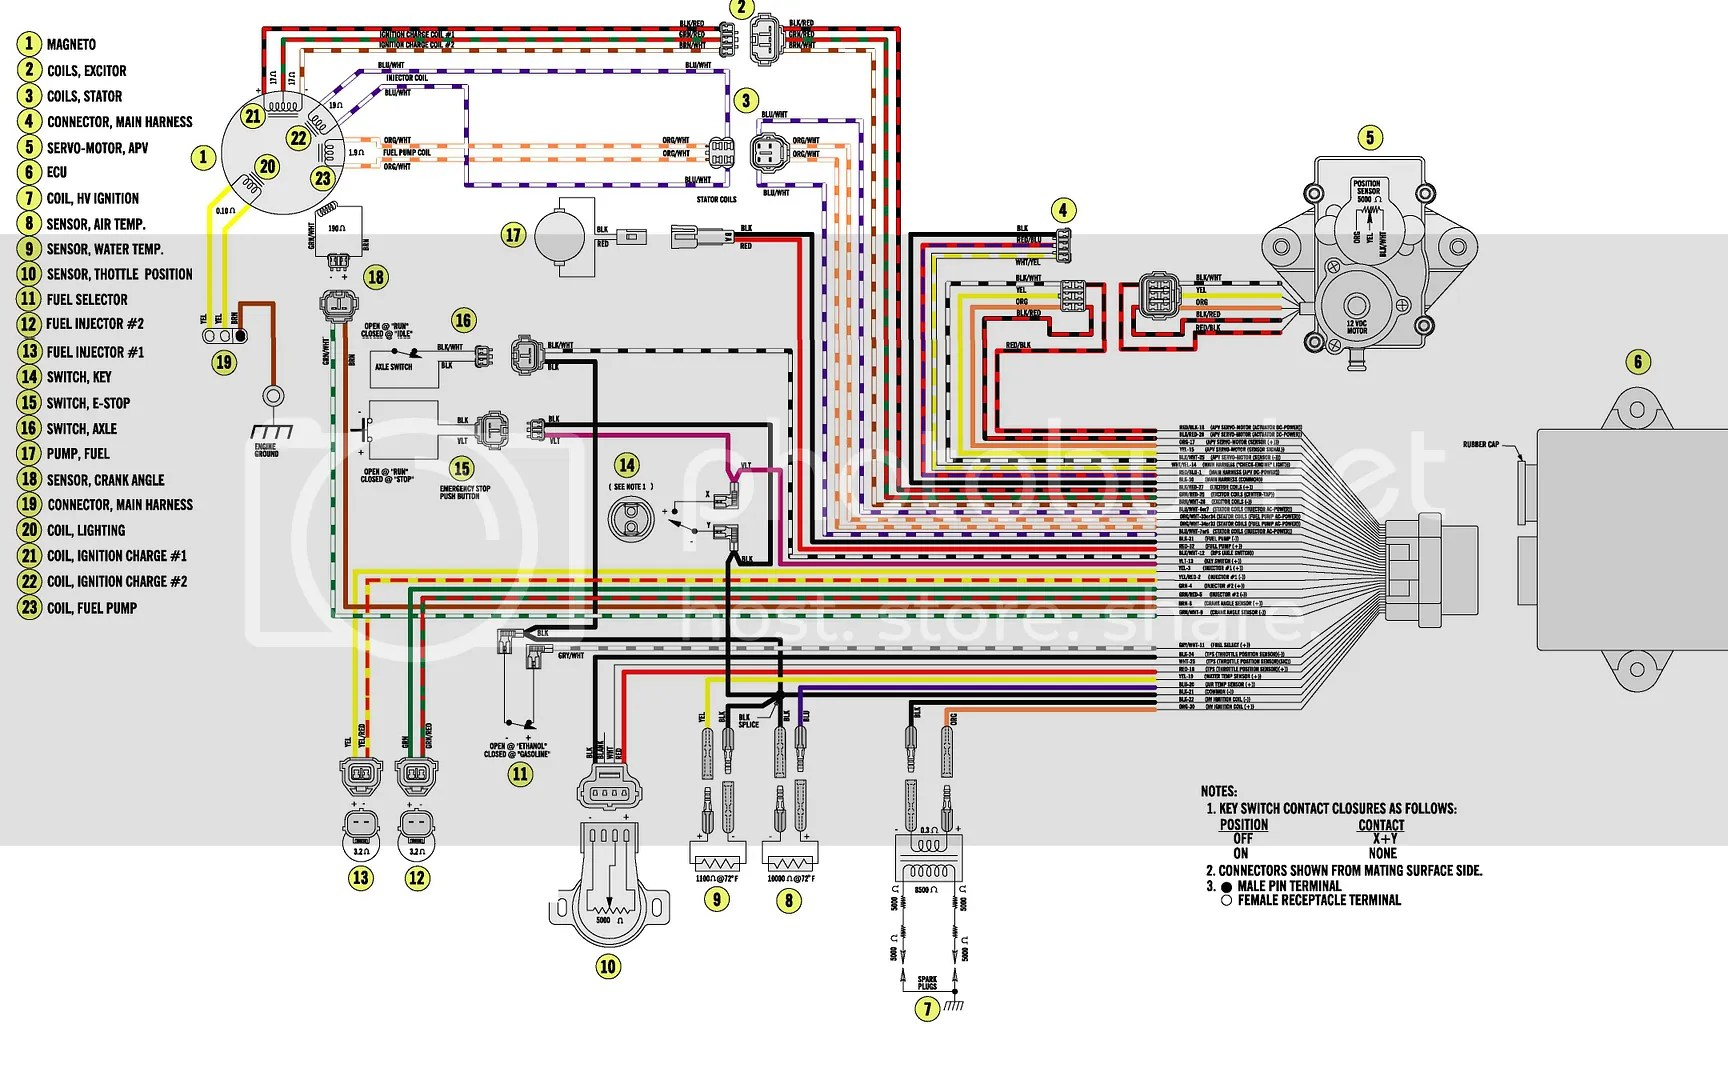 hight resolution of arctic cat schematic diagrams wiring diagram used arctic cat atv wiring schematics data diagram schematic arctic